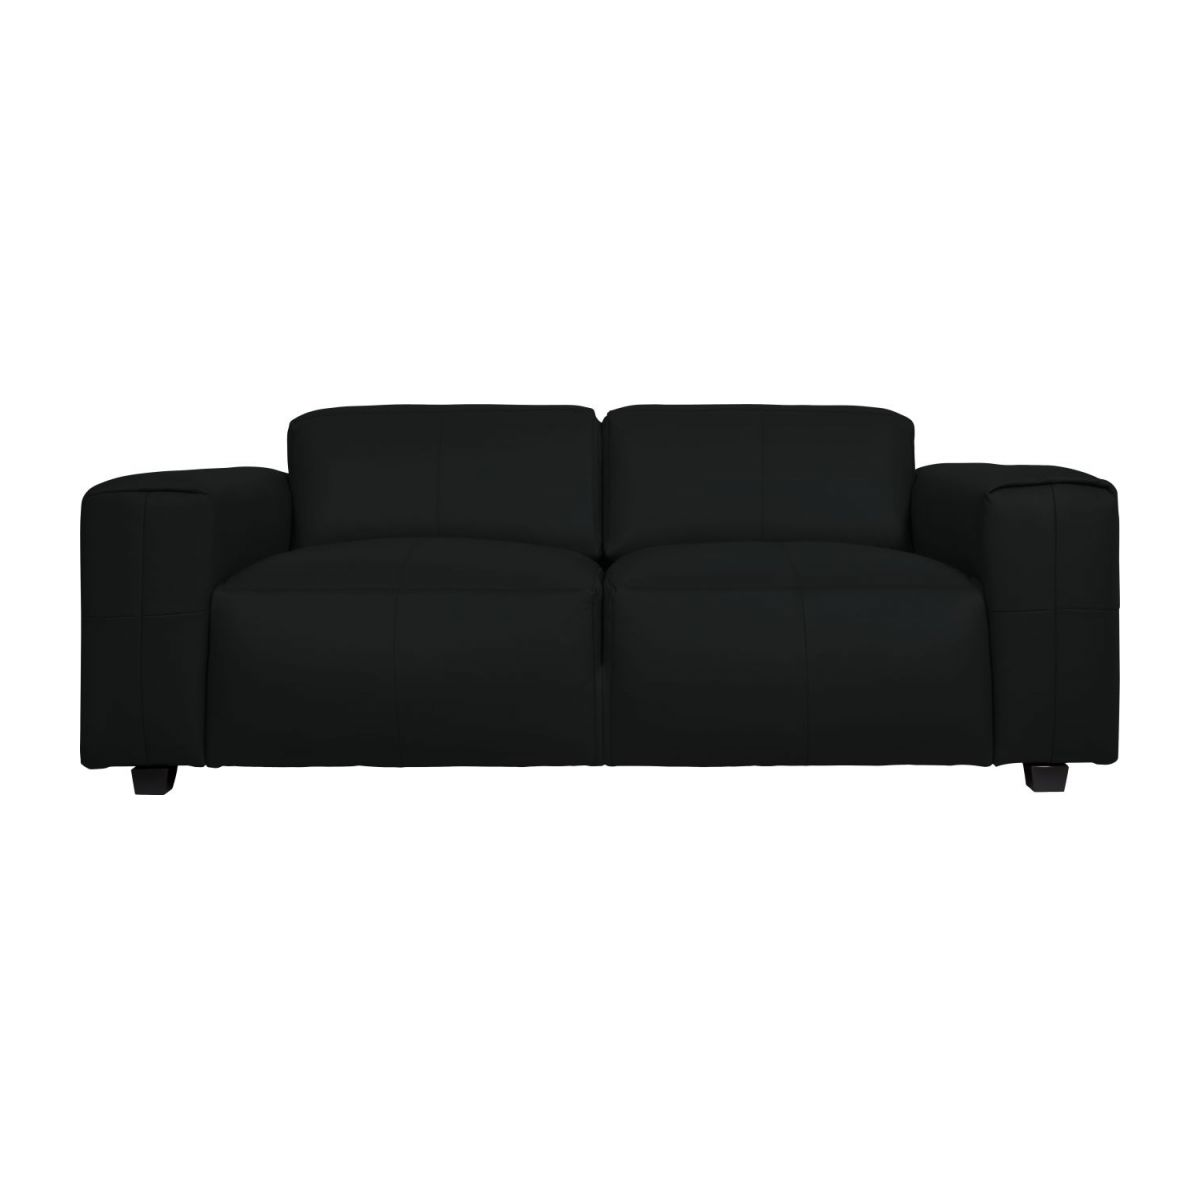 4 seater sofa in Savoy semi-aniline leather, platin black n°4